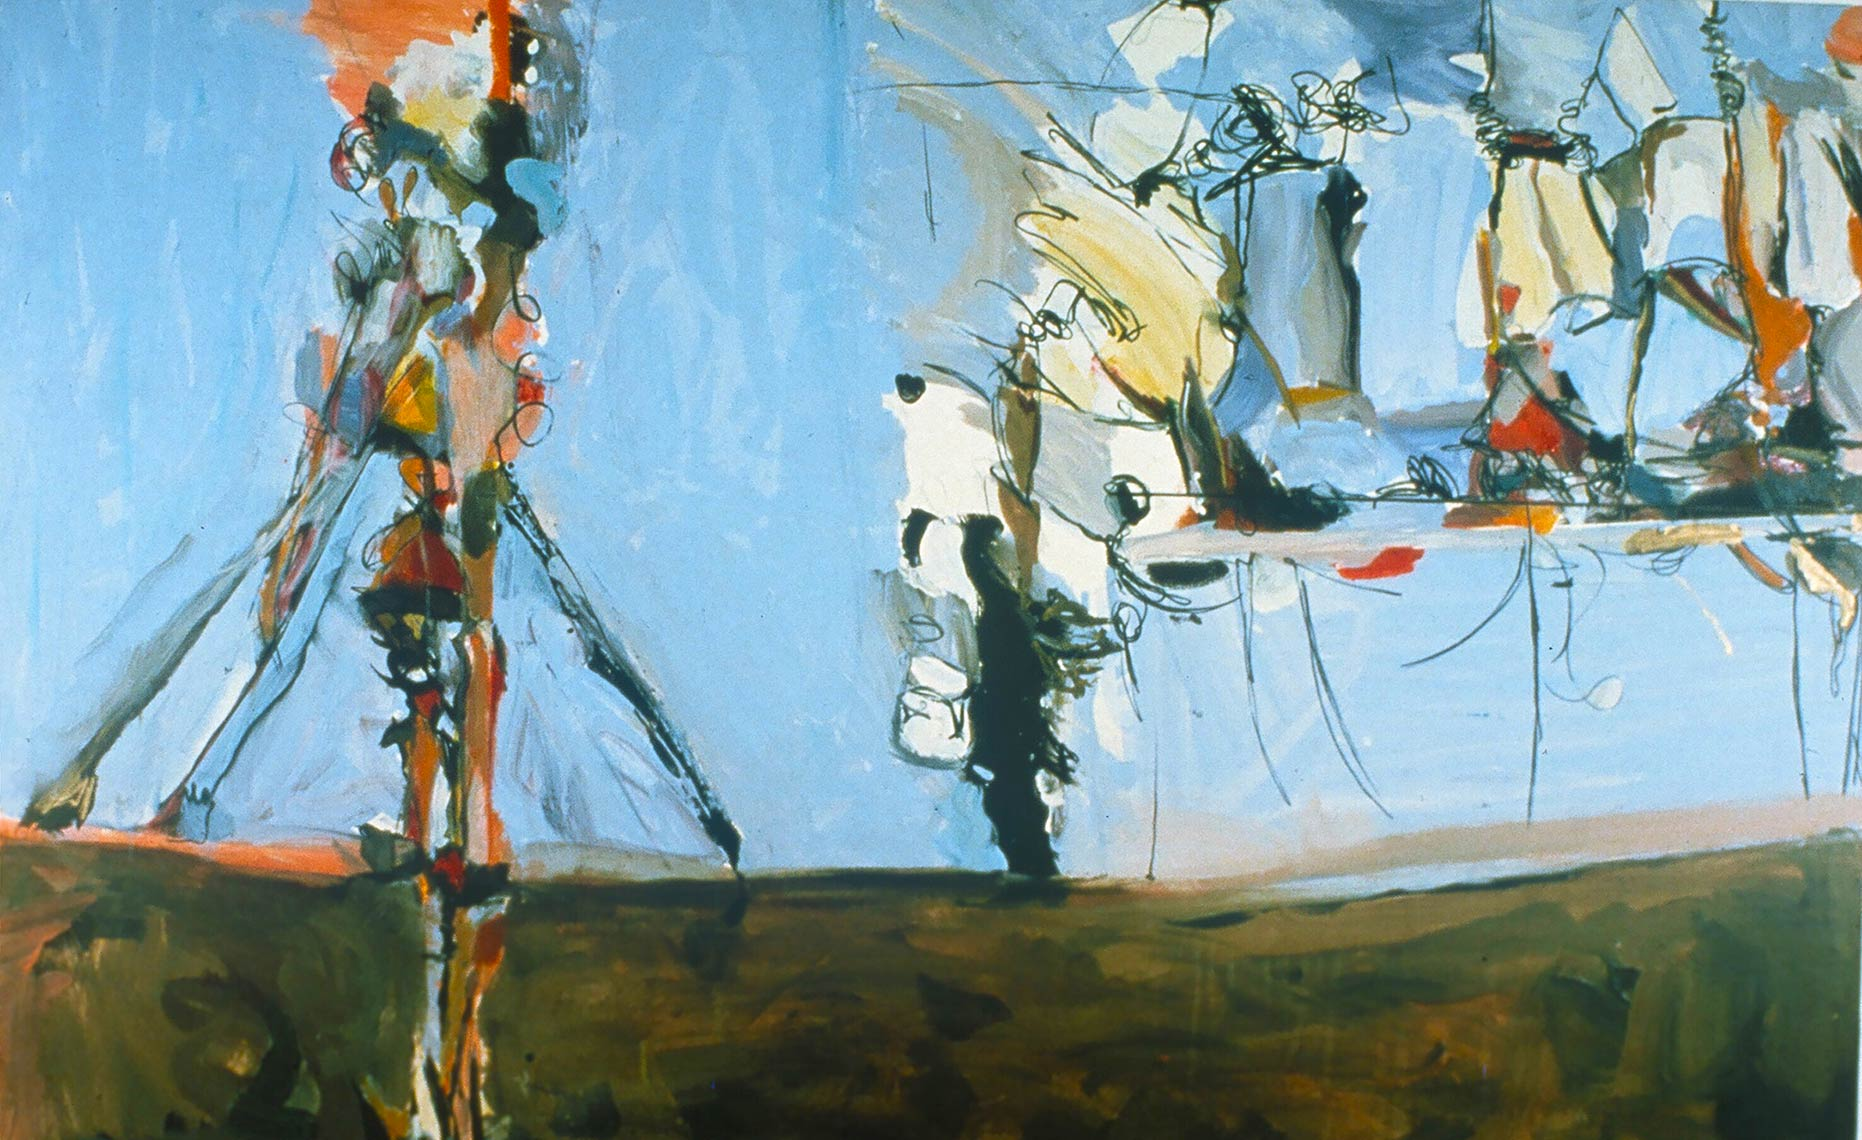 Dancing-on-a-Tar-Covered-Terrace-1986-Acrylic-on-canvas-46-x-84-inches1986